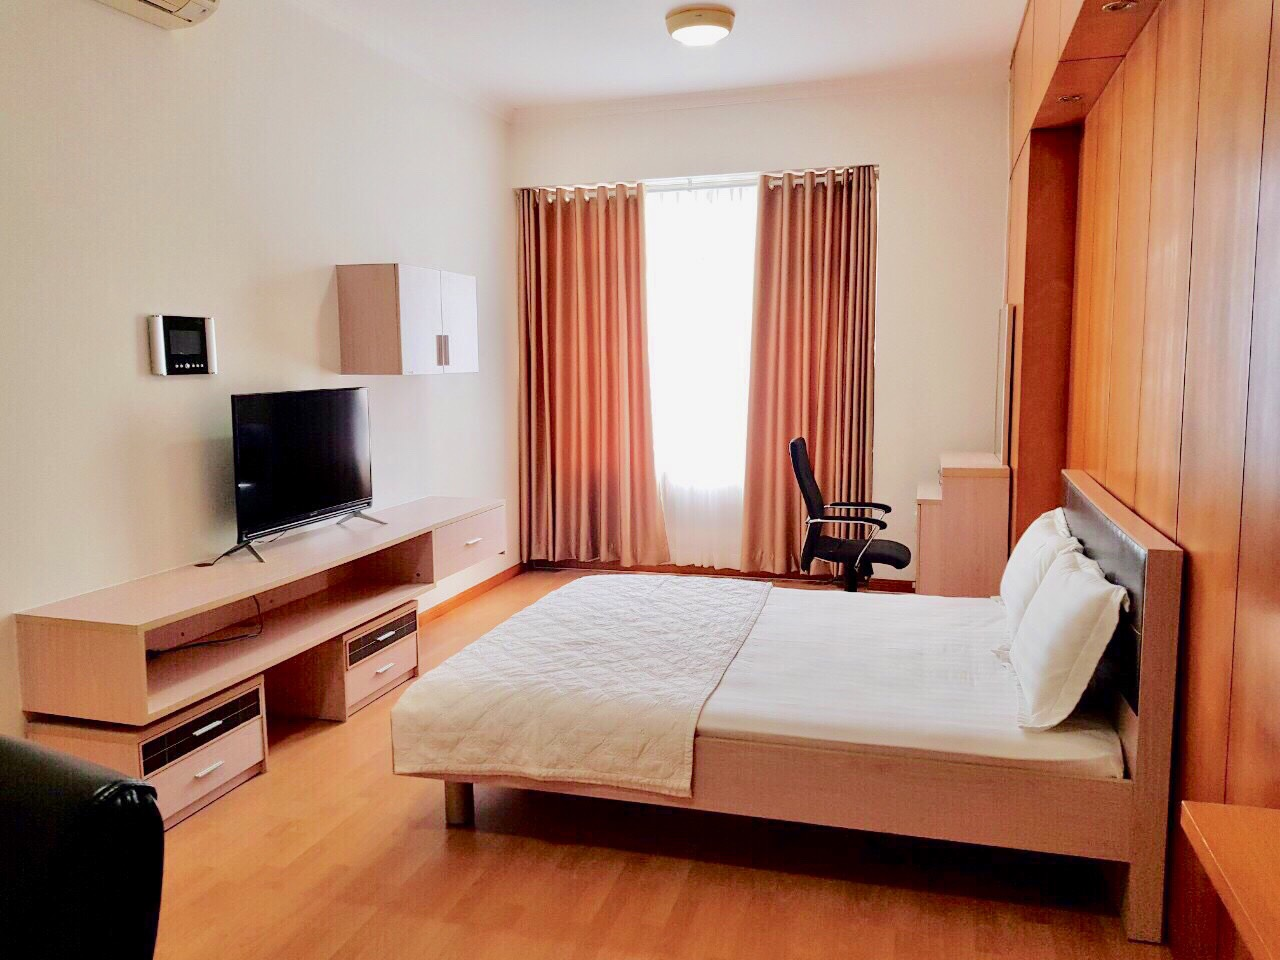 Apartment for rent BT101202 (5)